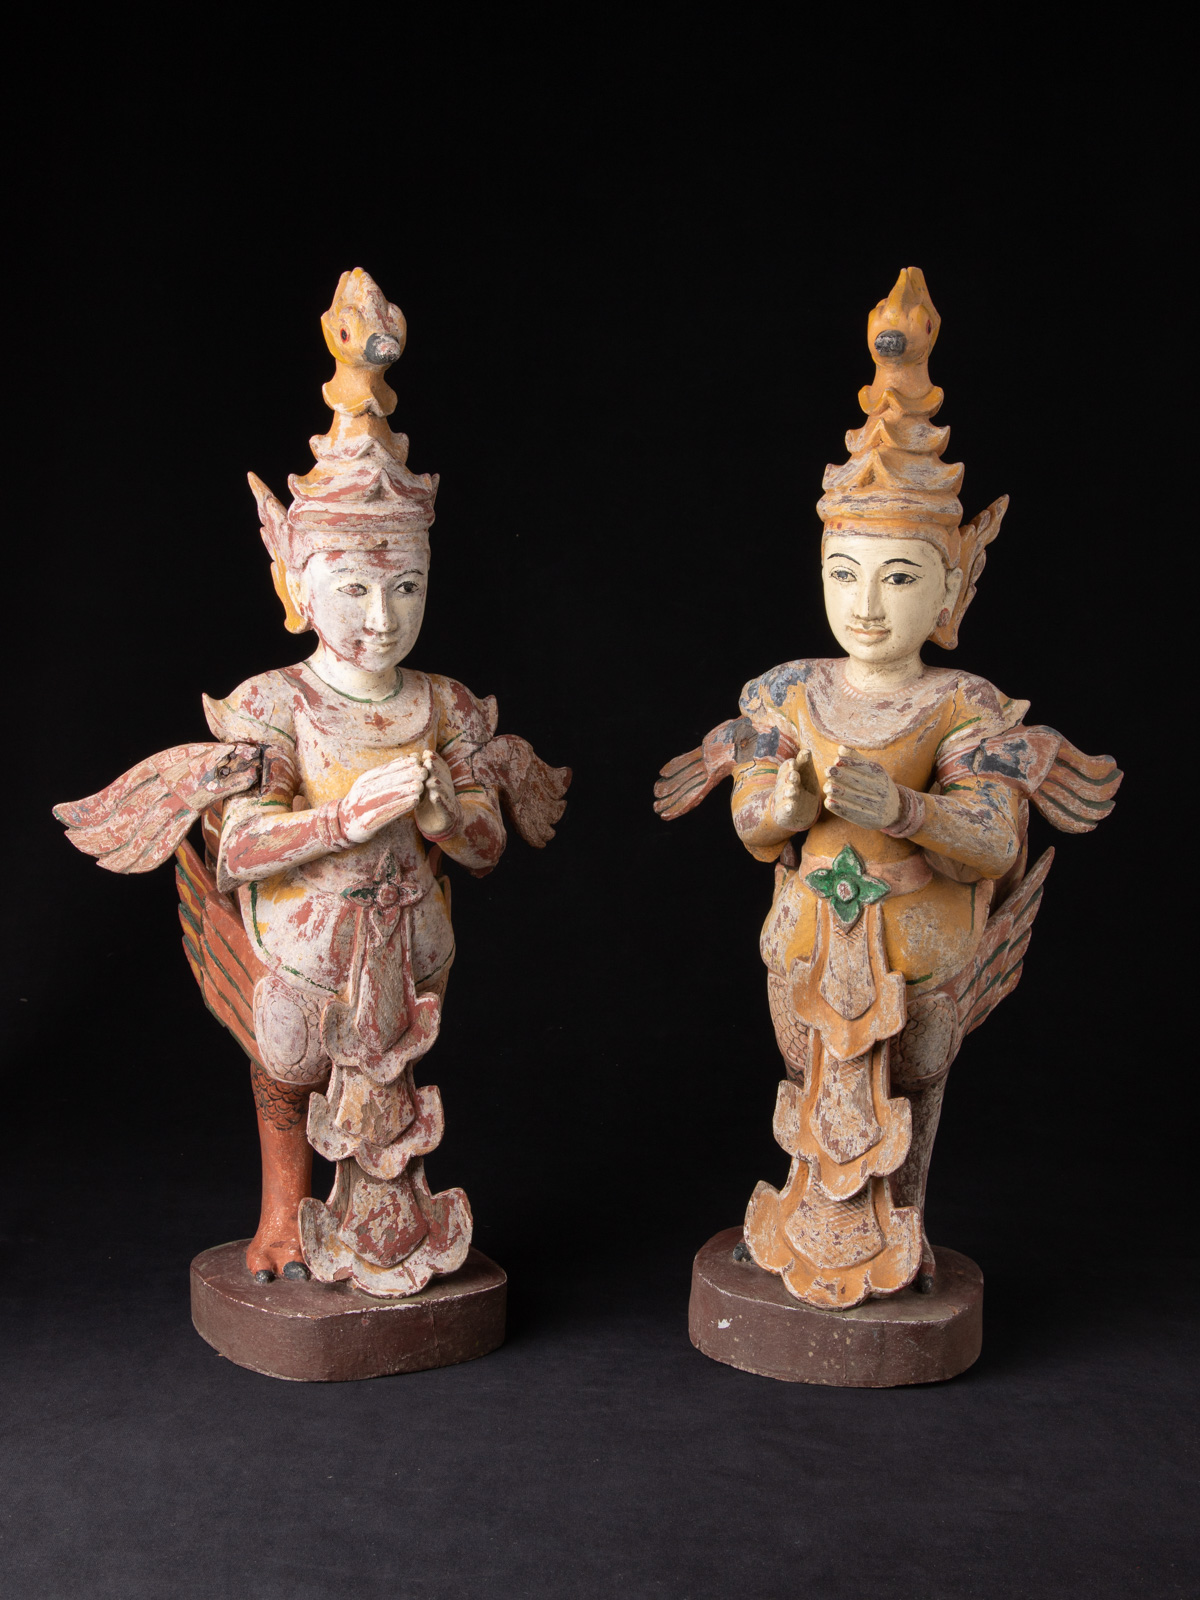 Old set of Kinnari statues from Burma made from Wood